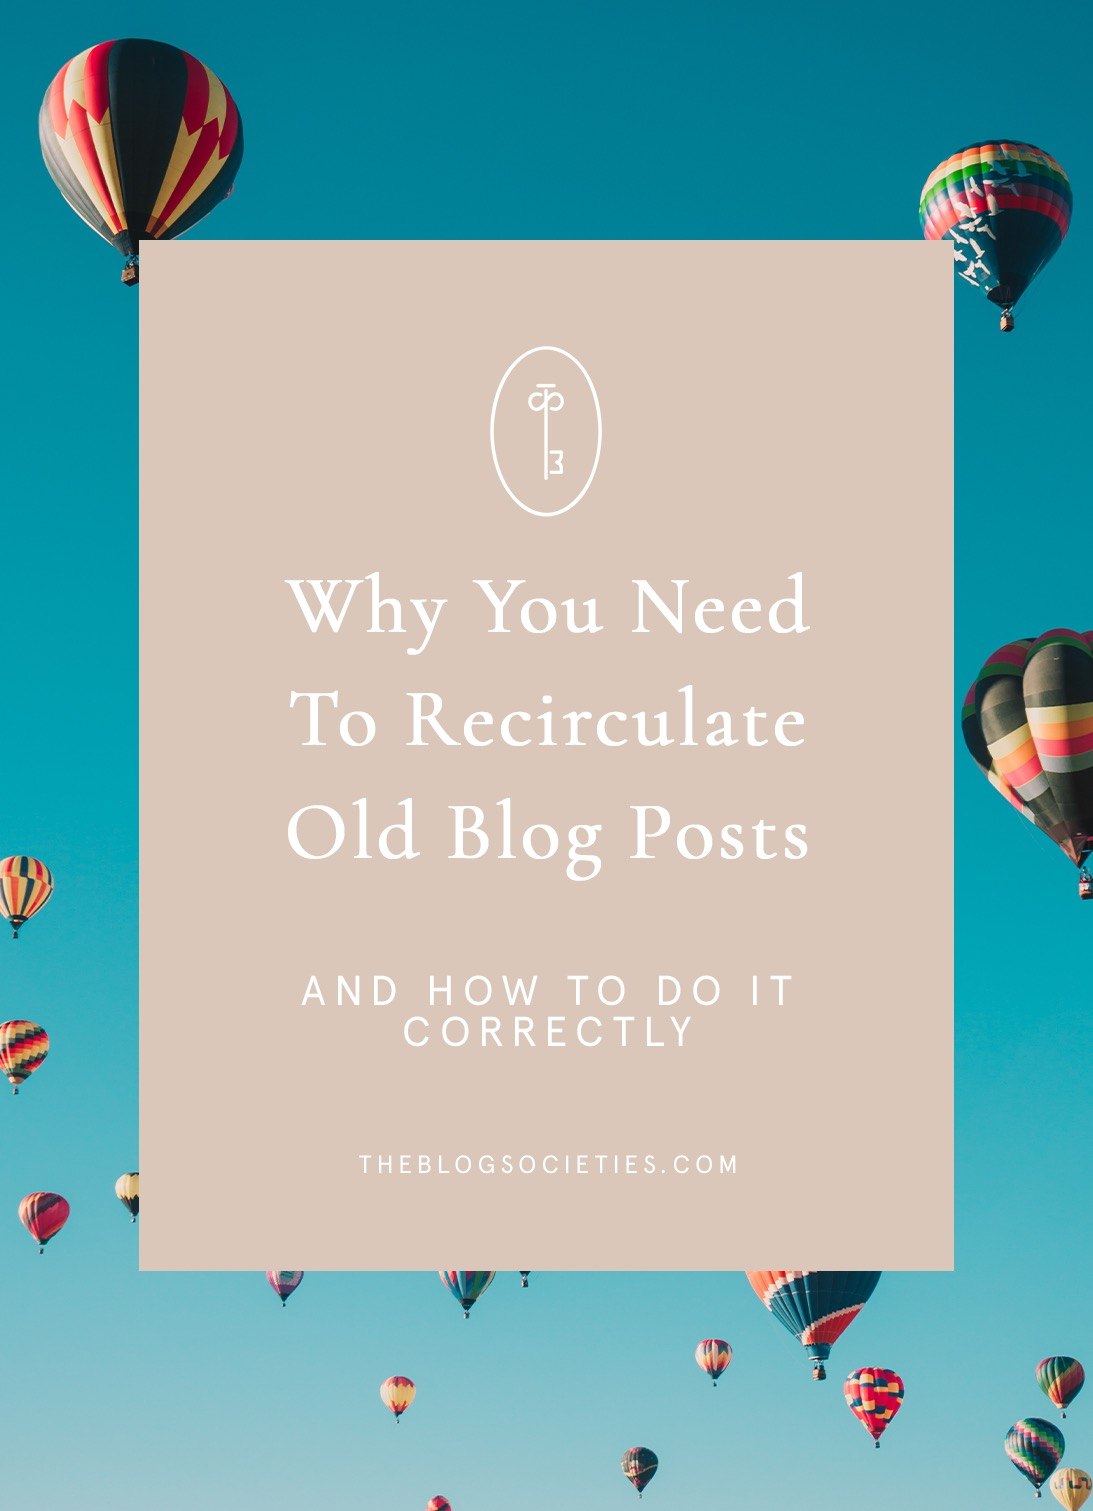 Why Bloggers Need To Recirculate Old Blog Posts – And How To Do It